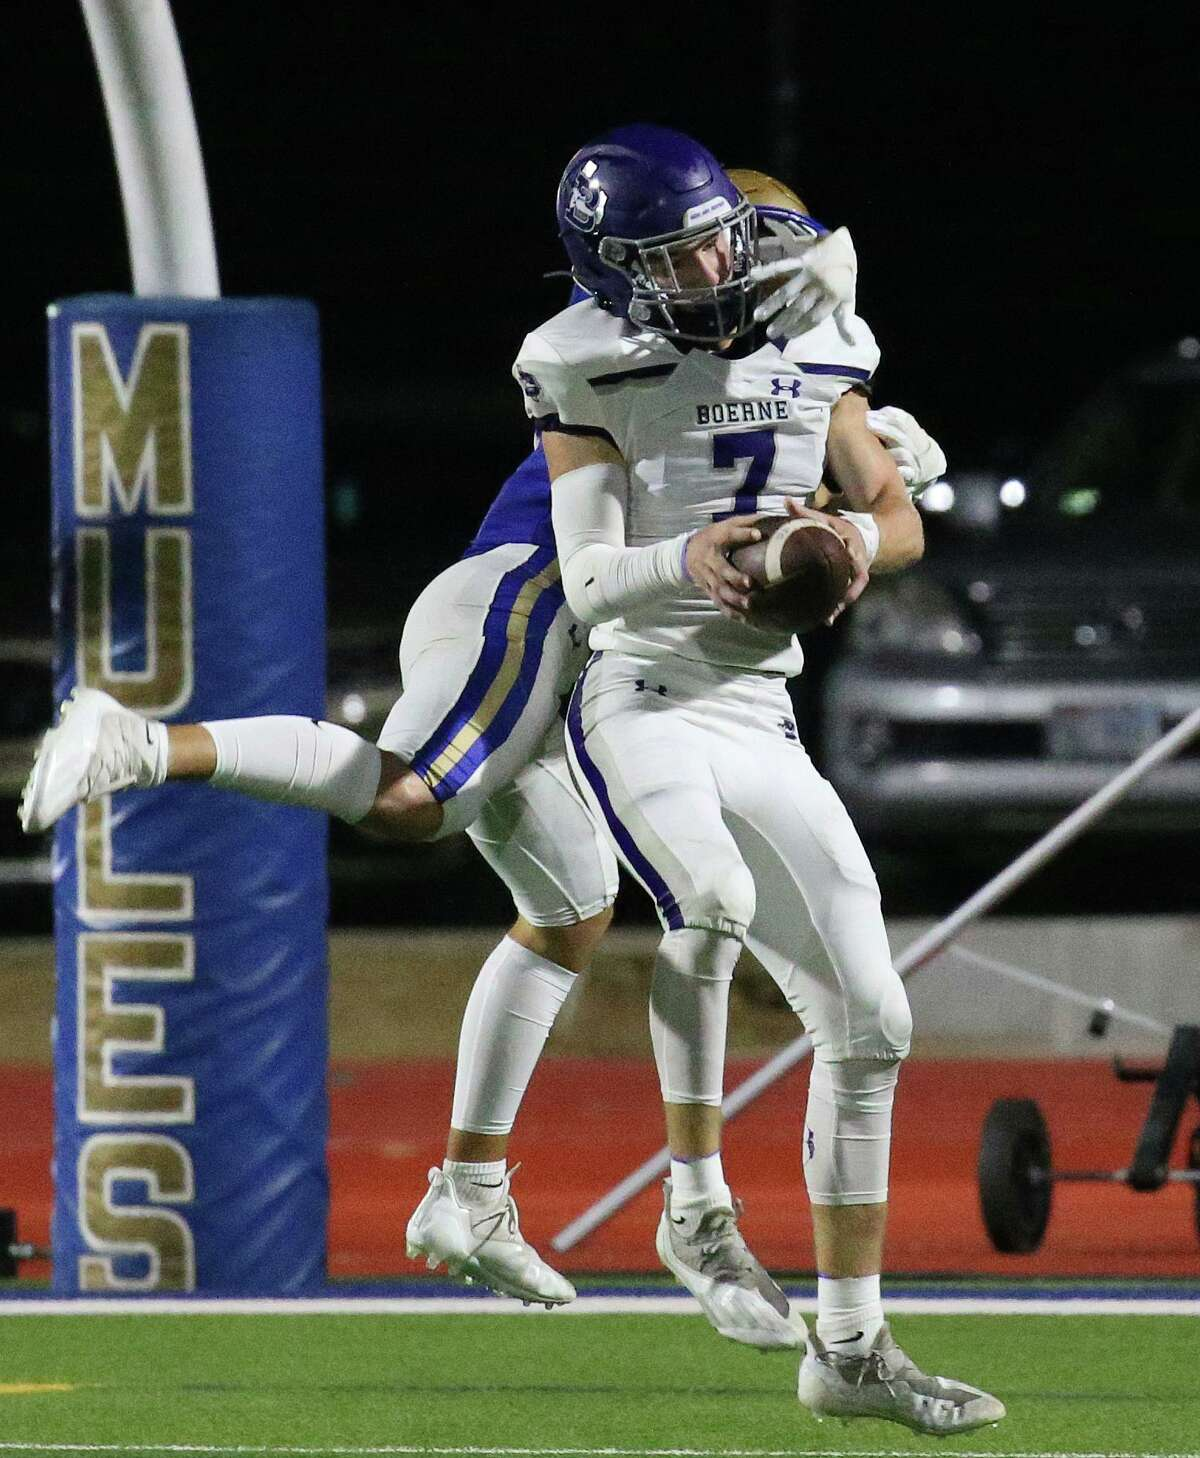 Boerne Will Pearson,7, intercepts a Alamo Heights pass in the end zone. Boerne at Alamo Heights on Friday, August 27, 202. Alamo Heights 34, Boerne 30